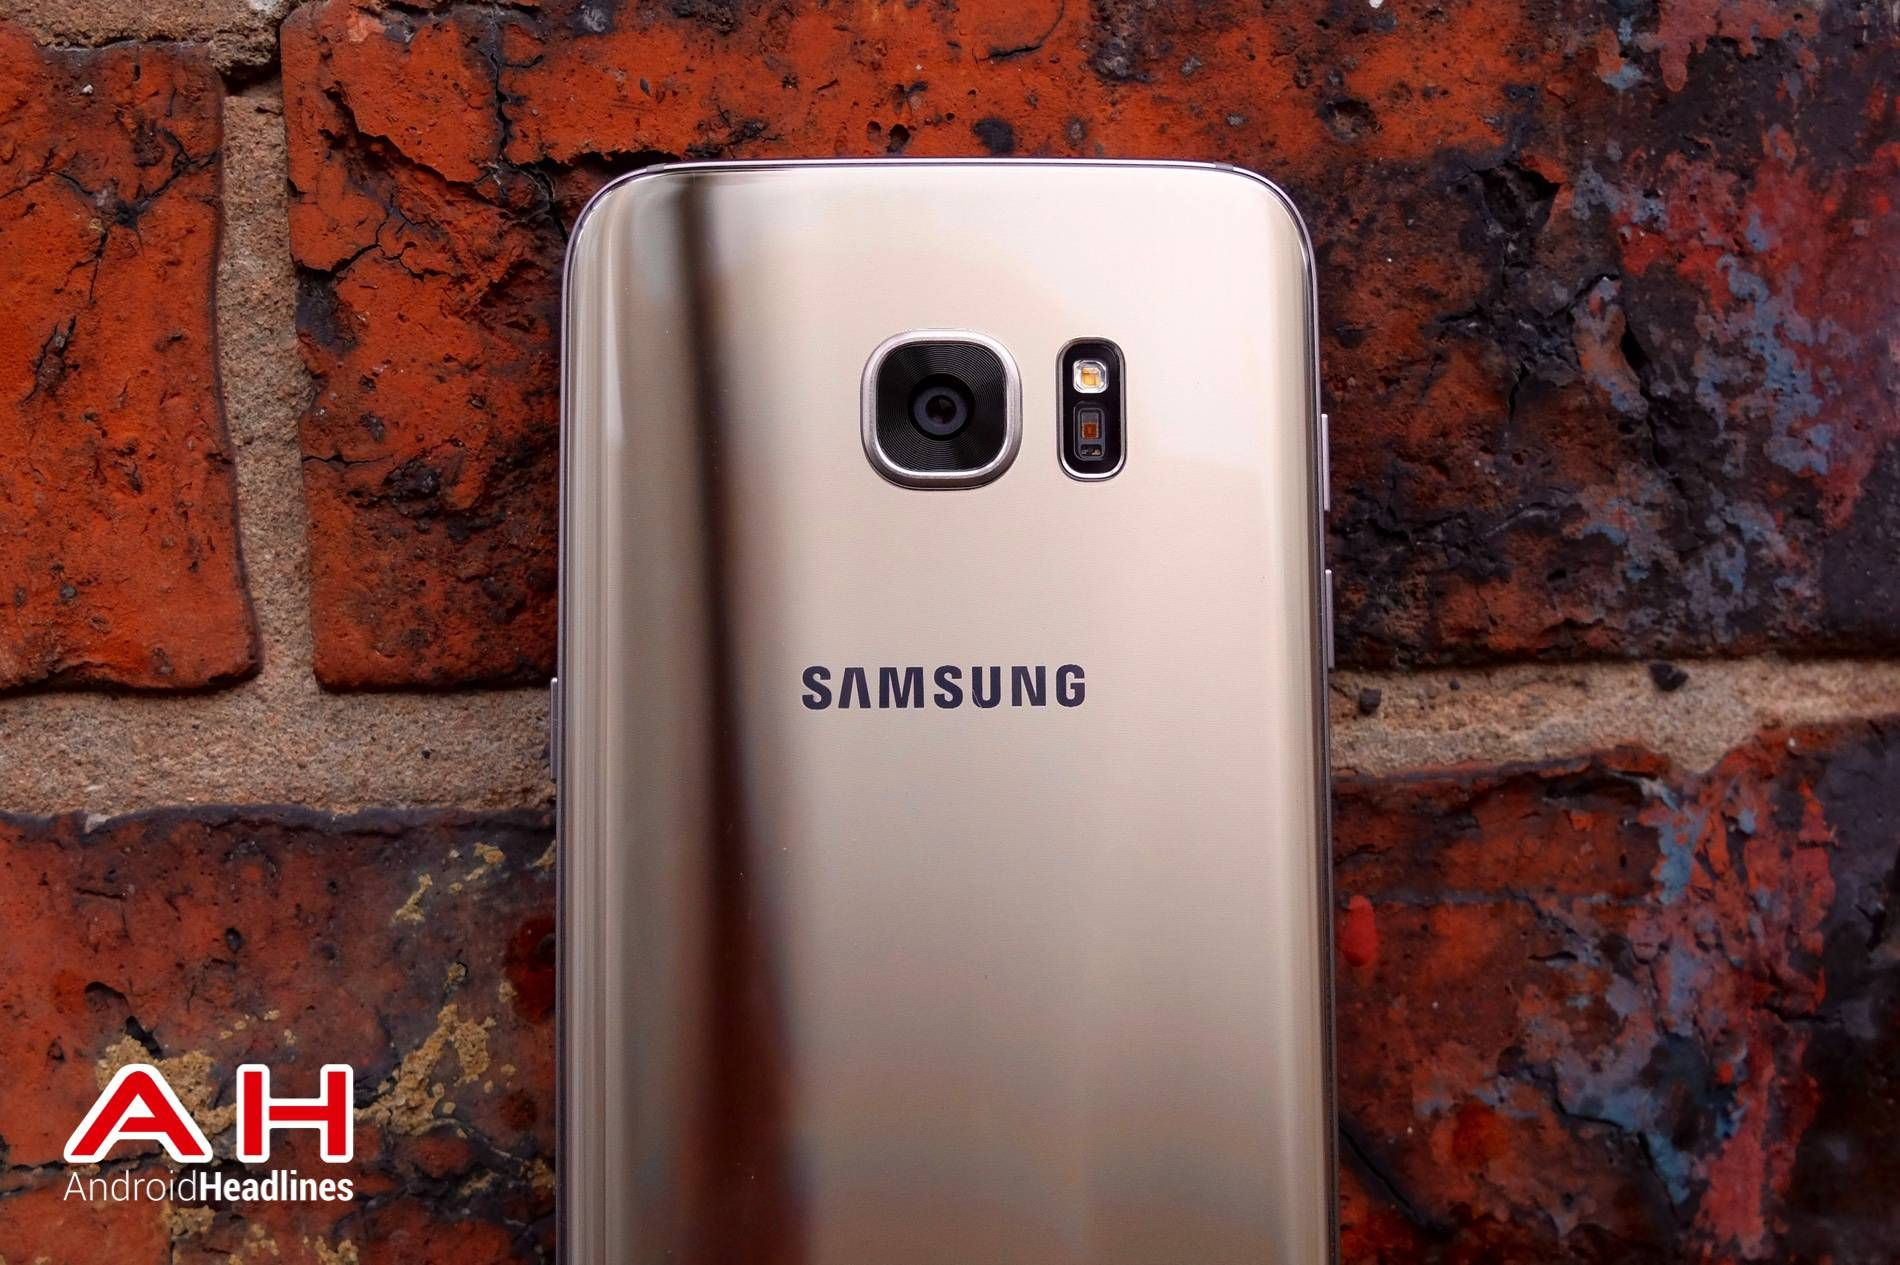 Report: Galaxy S7 Now The Most Used Samsung Device Worldwide #Android #Google #news